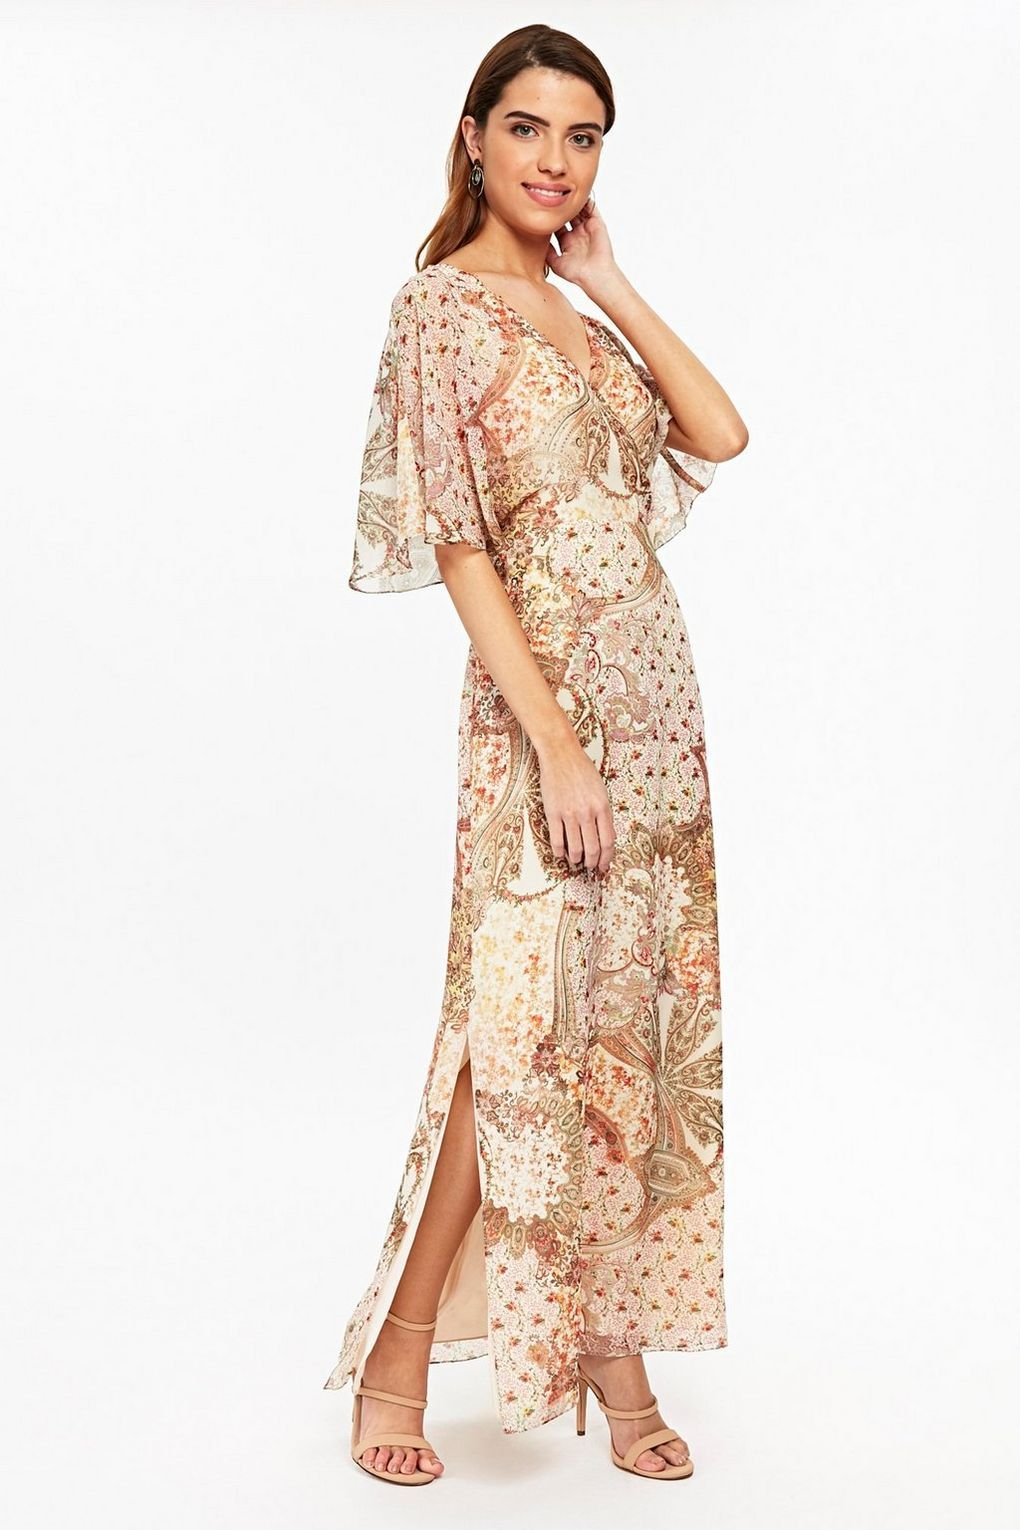 f93e035cbed Go from beach to bar in style with a boho inspired paisley maxi dress